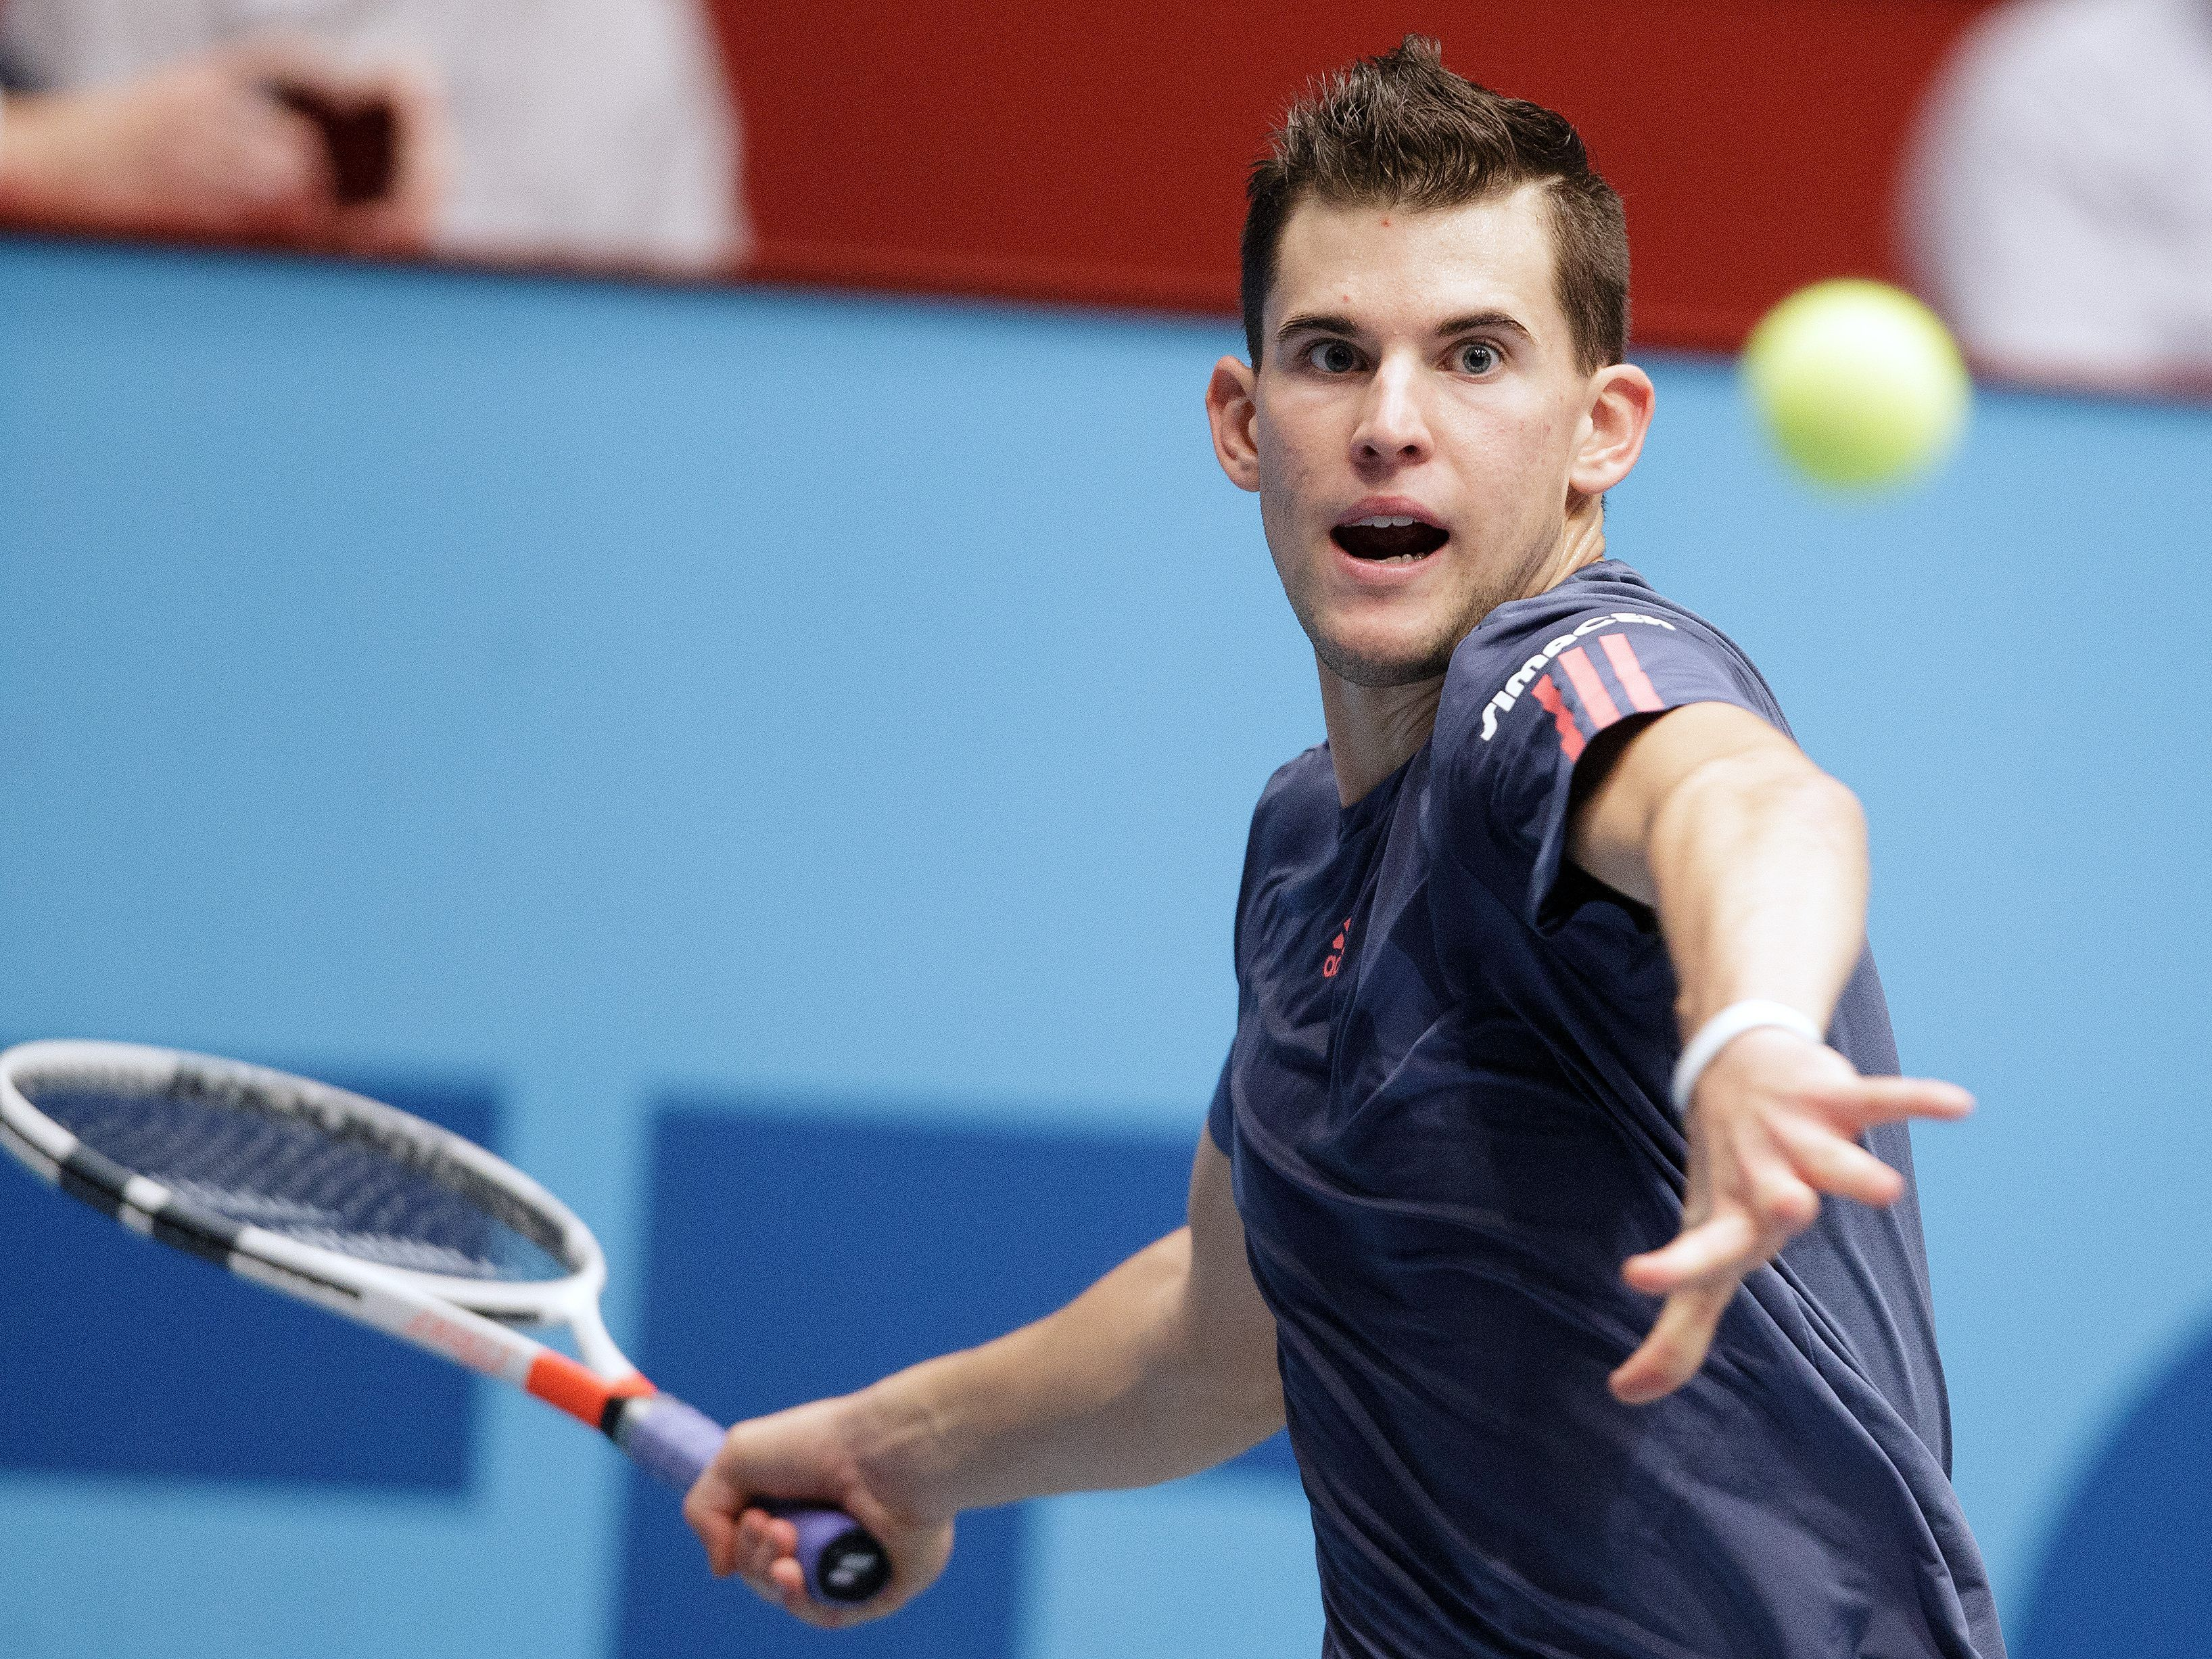 Dominic Thiem gilt in der Wiener Stadthalle als Favorit.